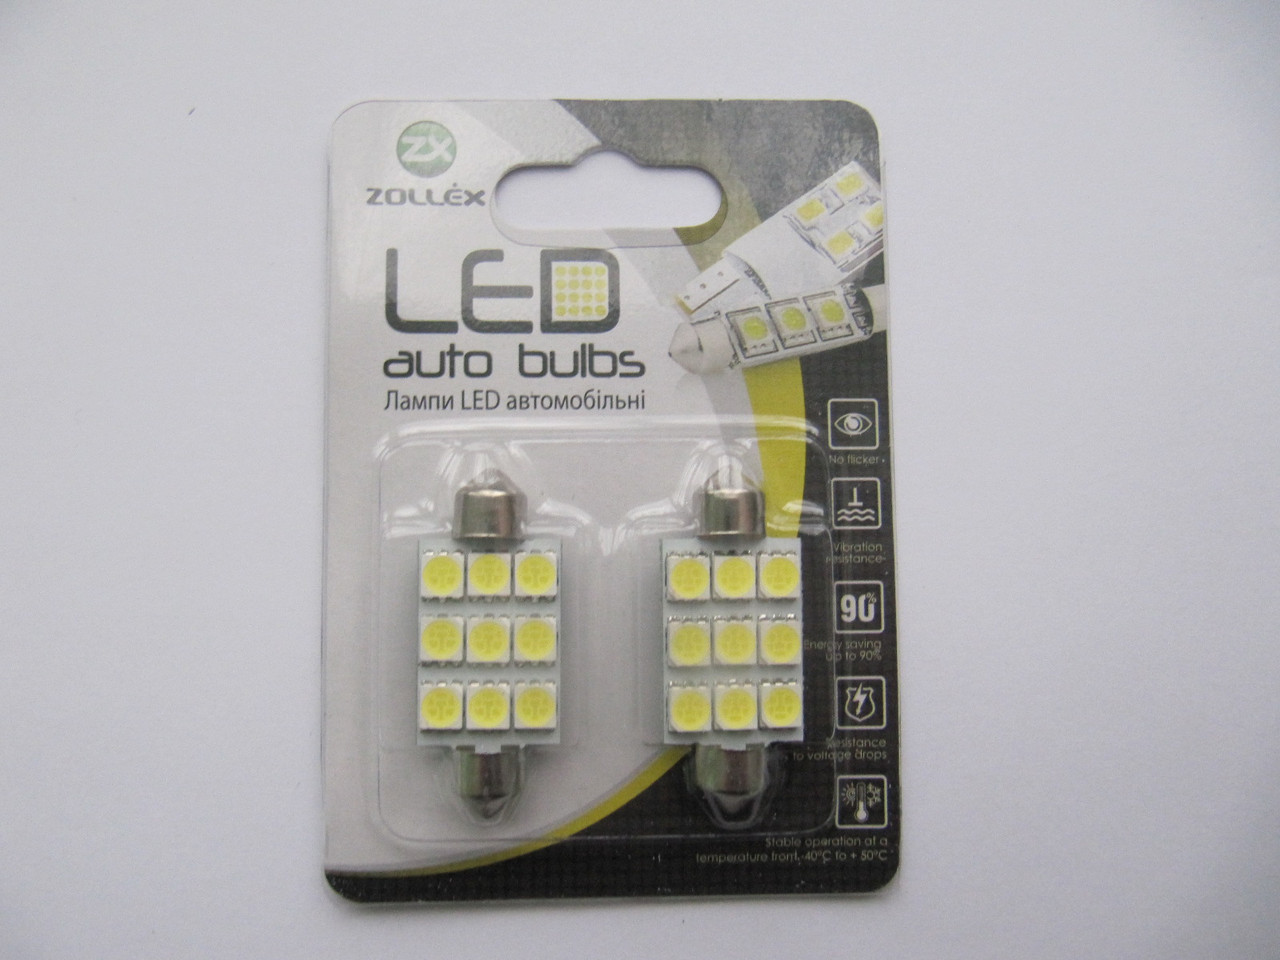 Zollex LED Festoon/41mm SMD5050x9 12V White (2шт)V220541